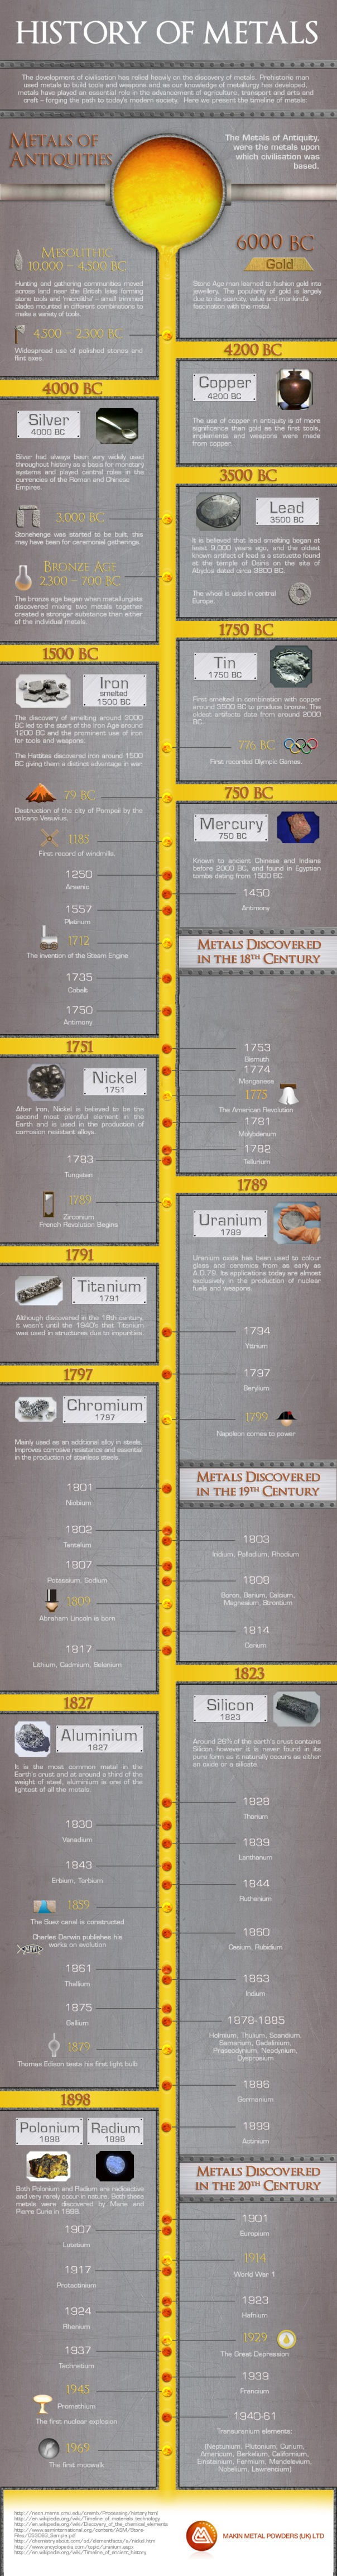 history-of-metals-infographic1